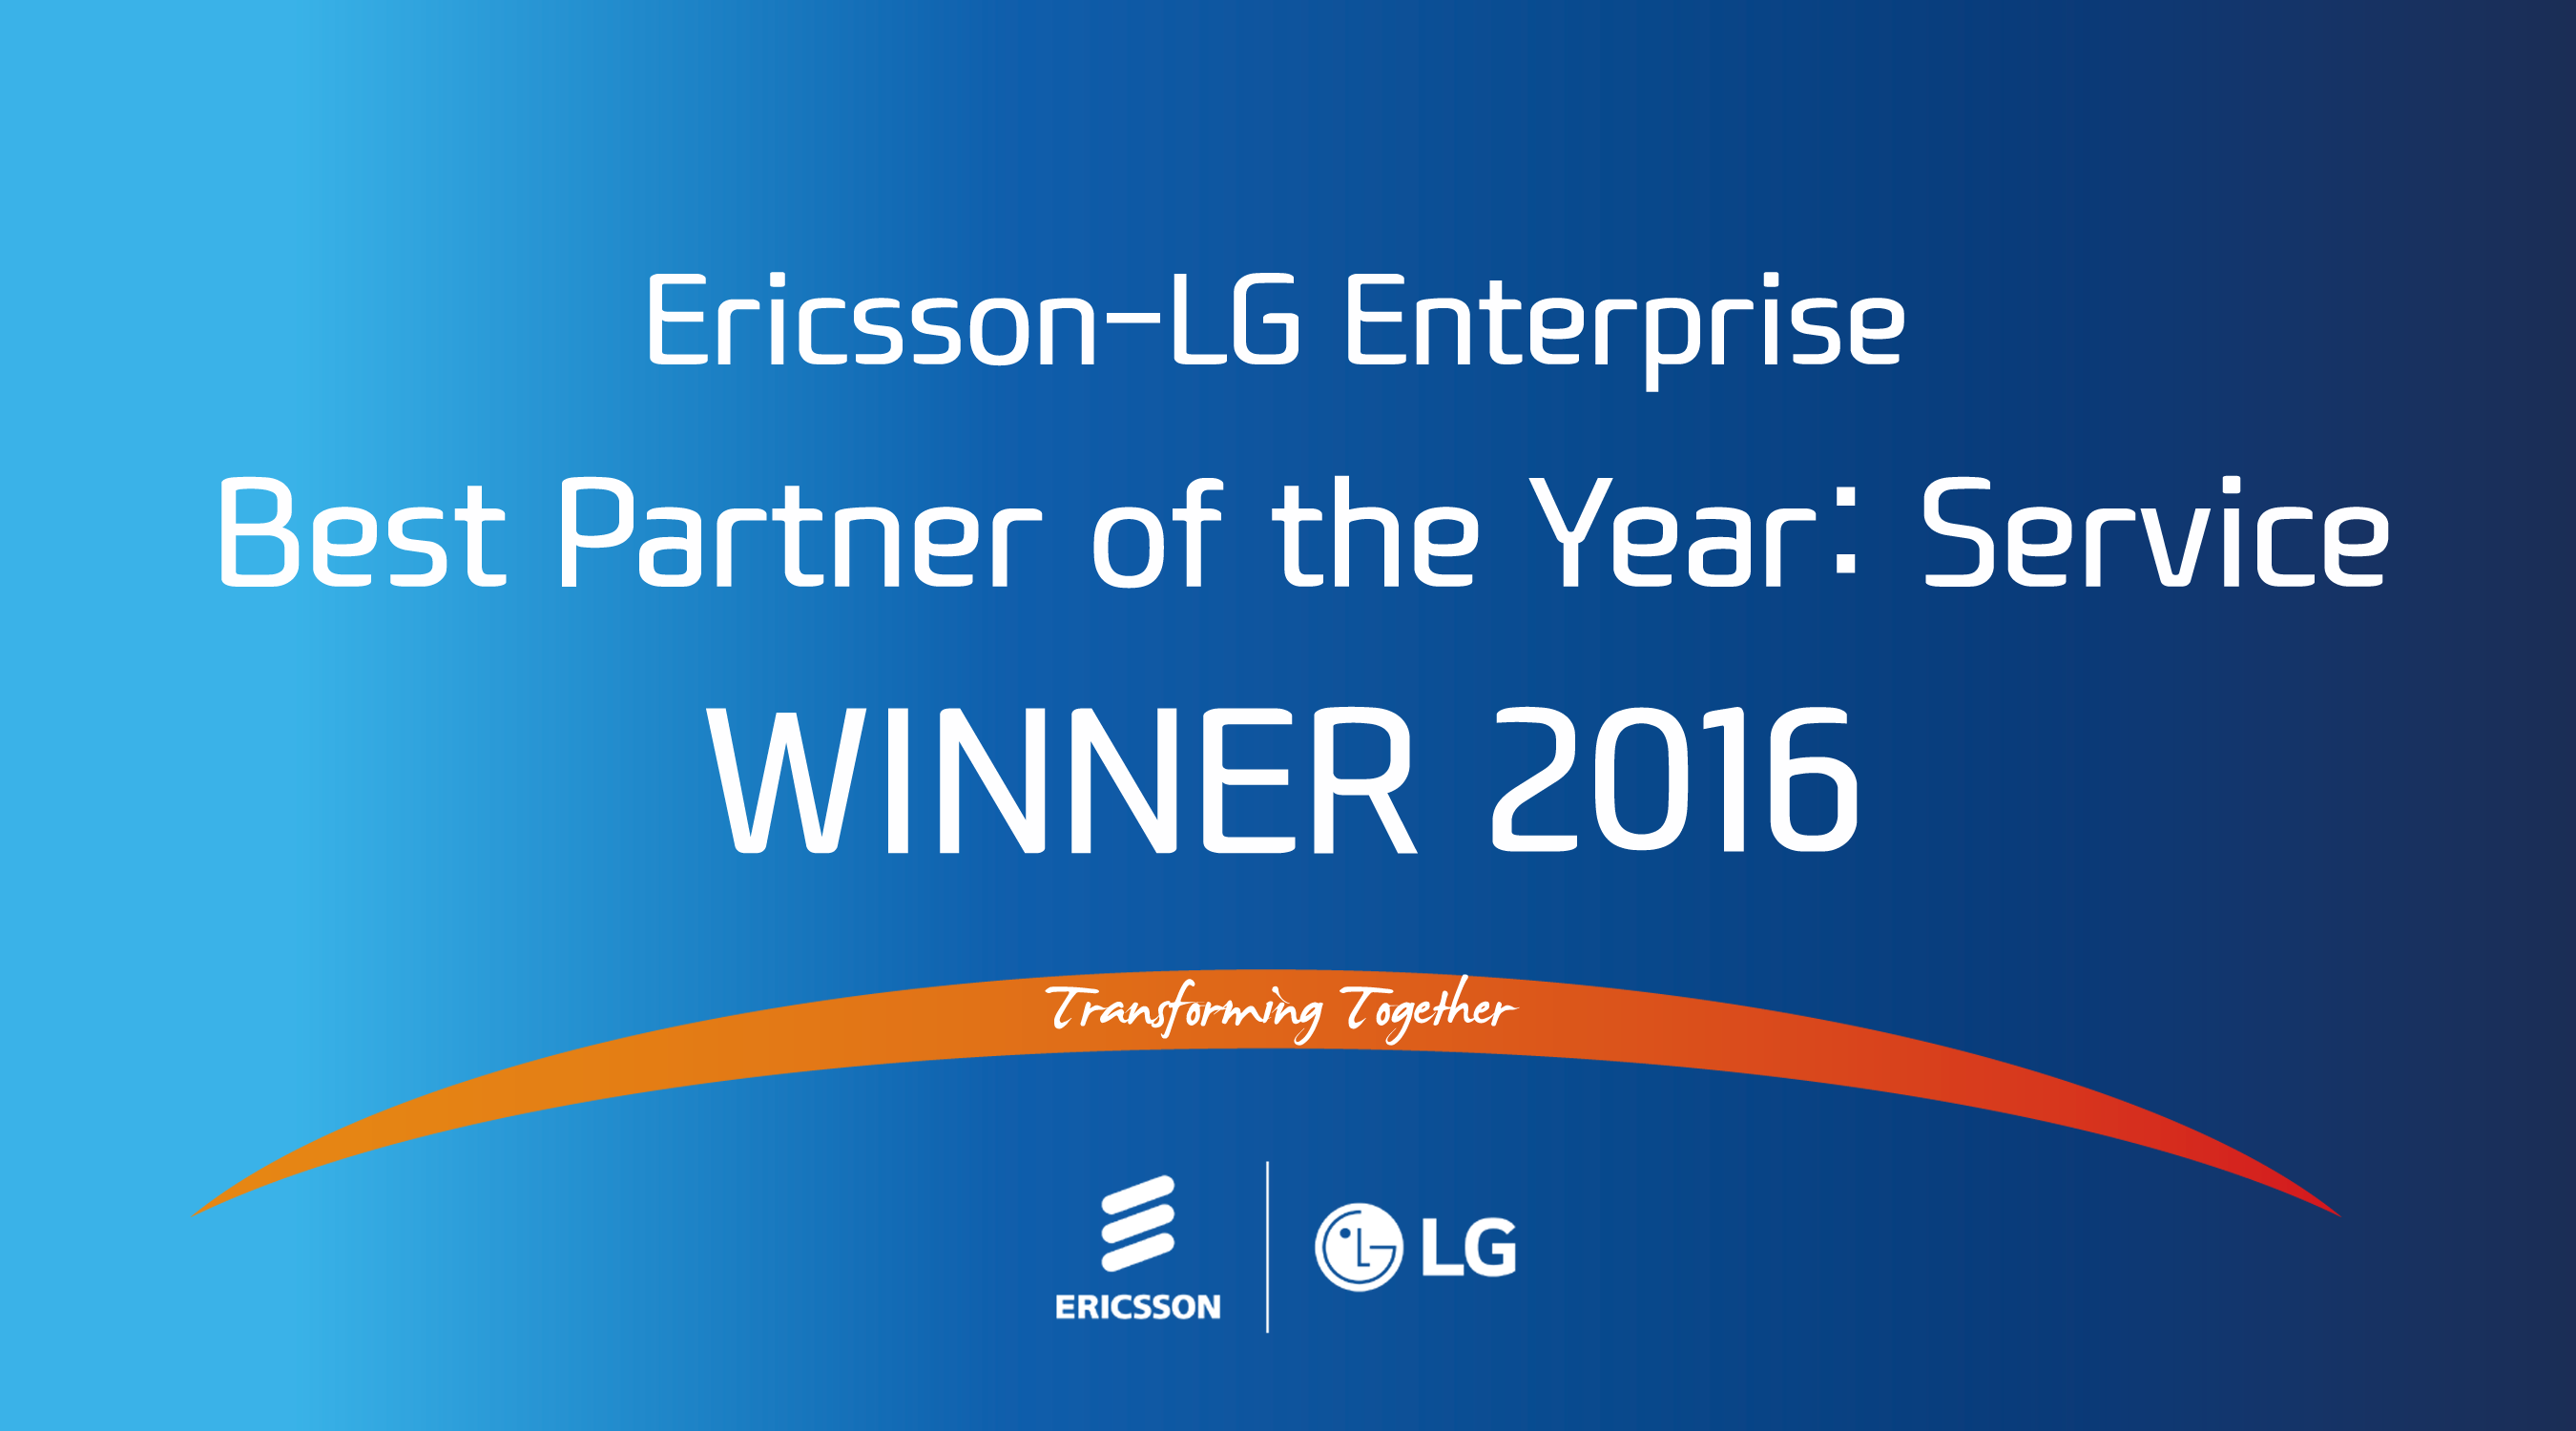 Ericsson-LG Enterprise Best Partner of the Year - Service 2016